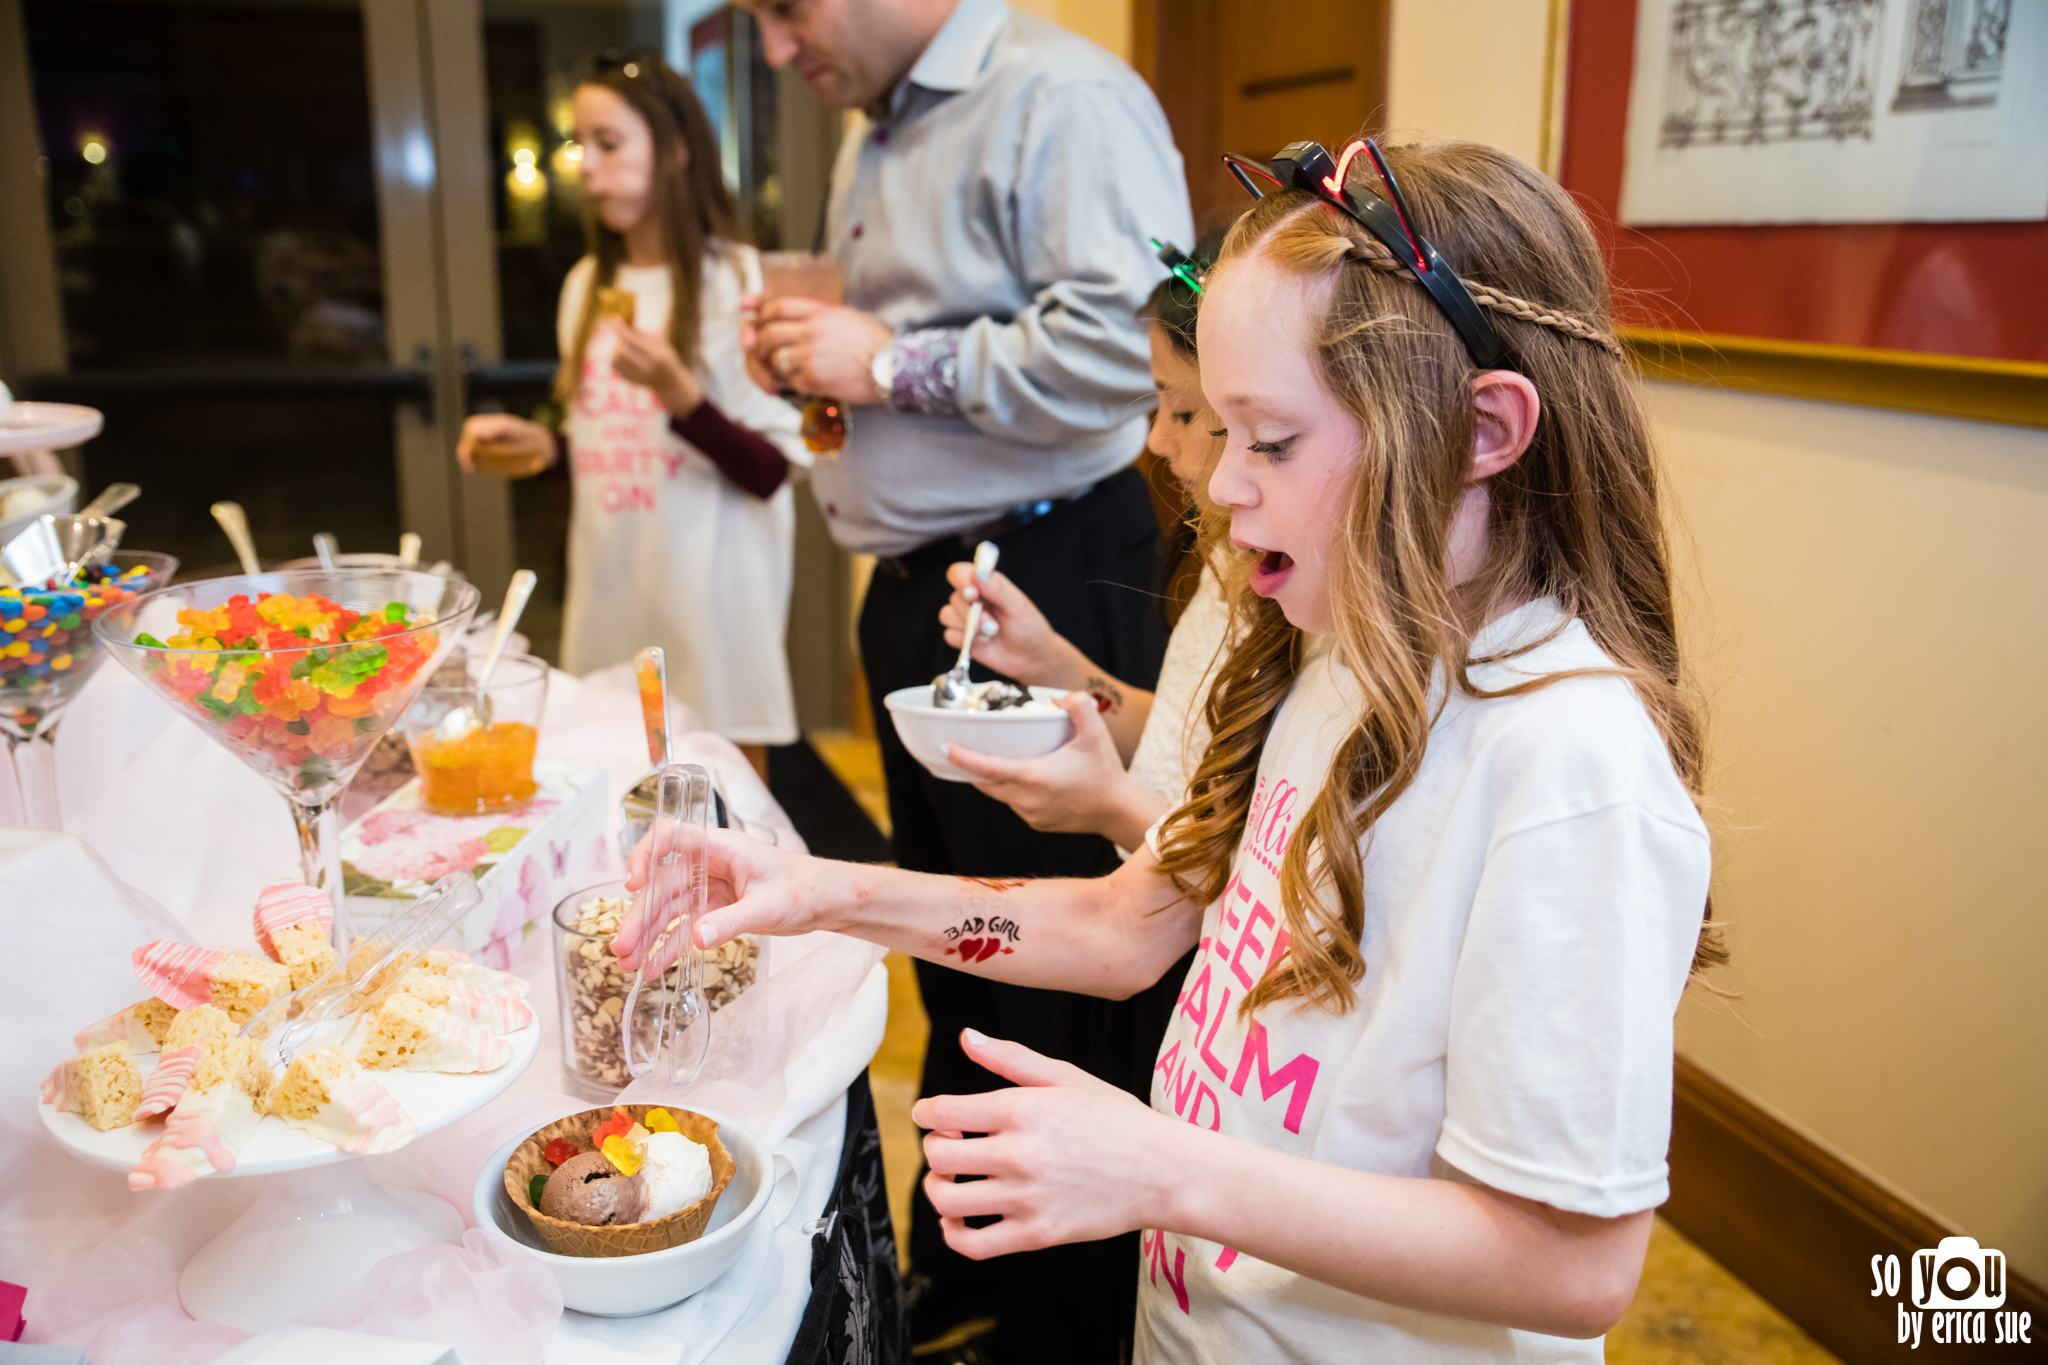 parkland-fl-mitzvah-photography-so-you-by-erica-sue-1852.jpg